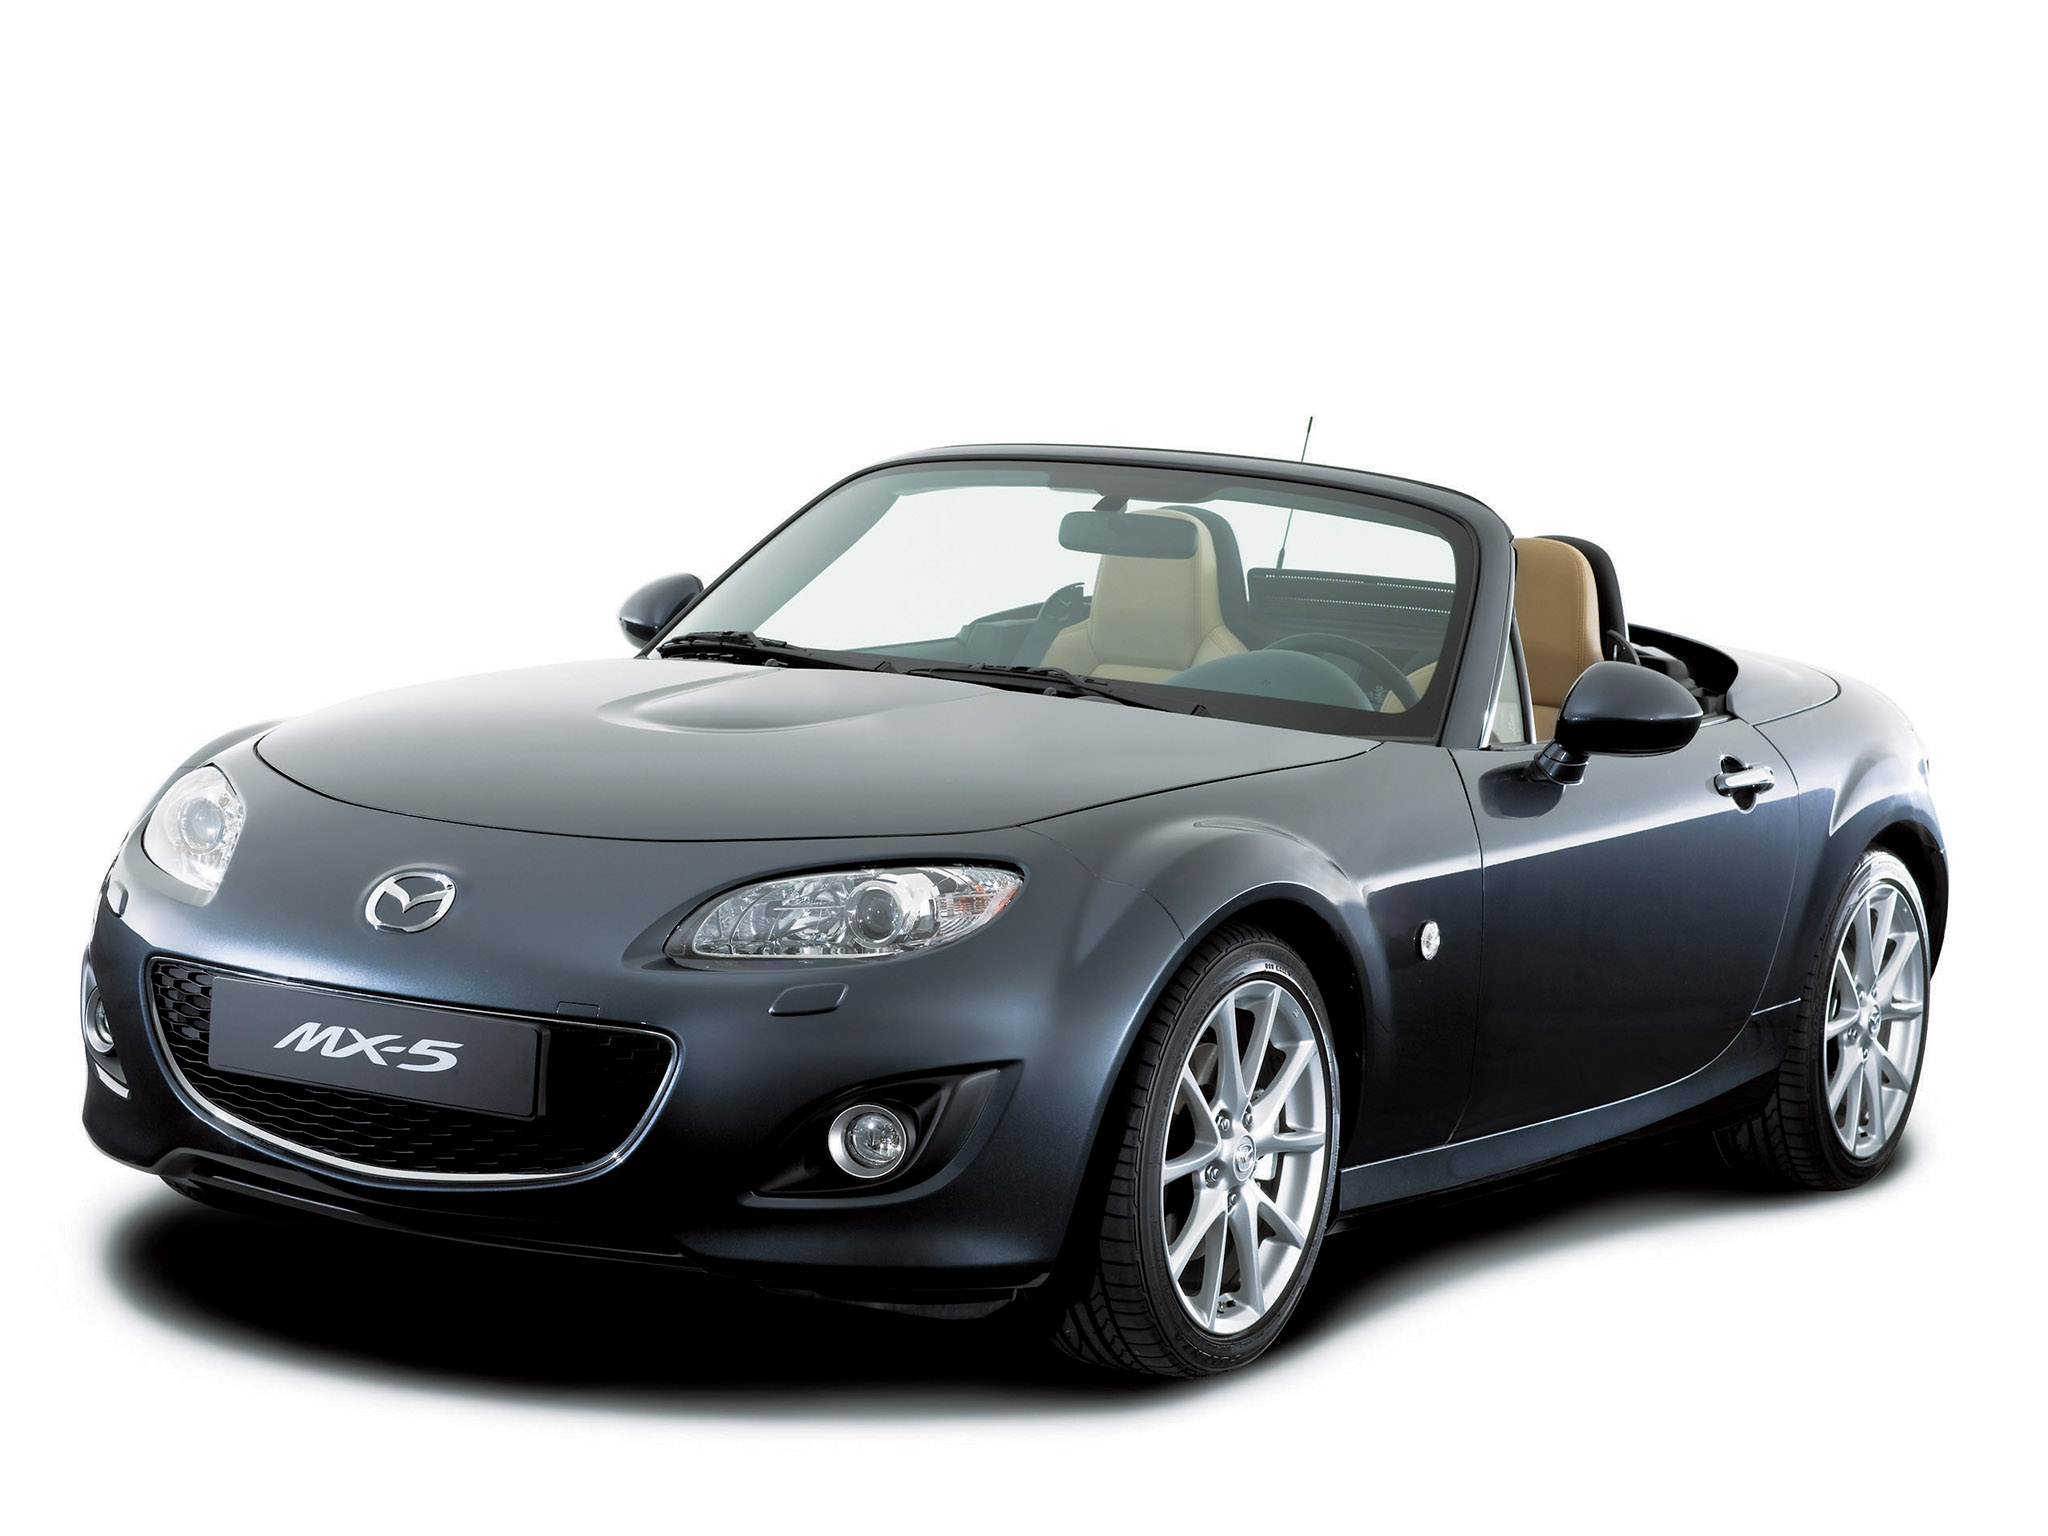 mazda mx 5 roadster coupe 2008 mazda mx 5 roadster coupe 2008 photo 03 car in pictures car. Black Bedroom Furniture Sets. Home Design Ideas